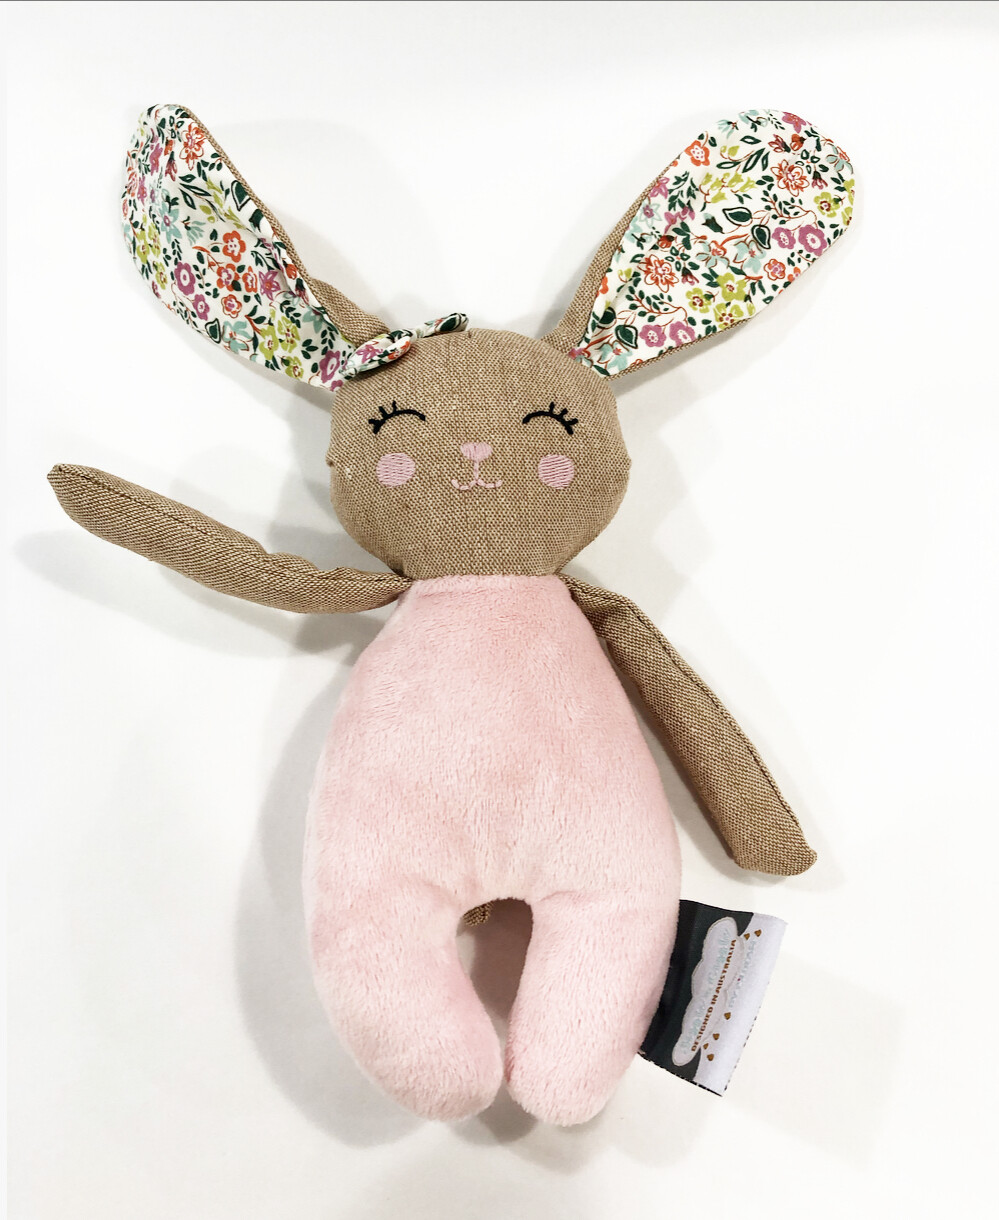 BUNNY RATTLE TOY by PILBEAM